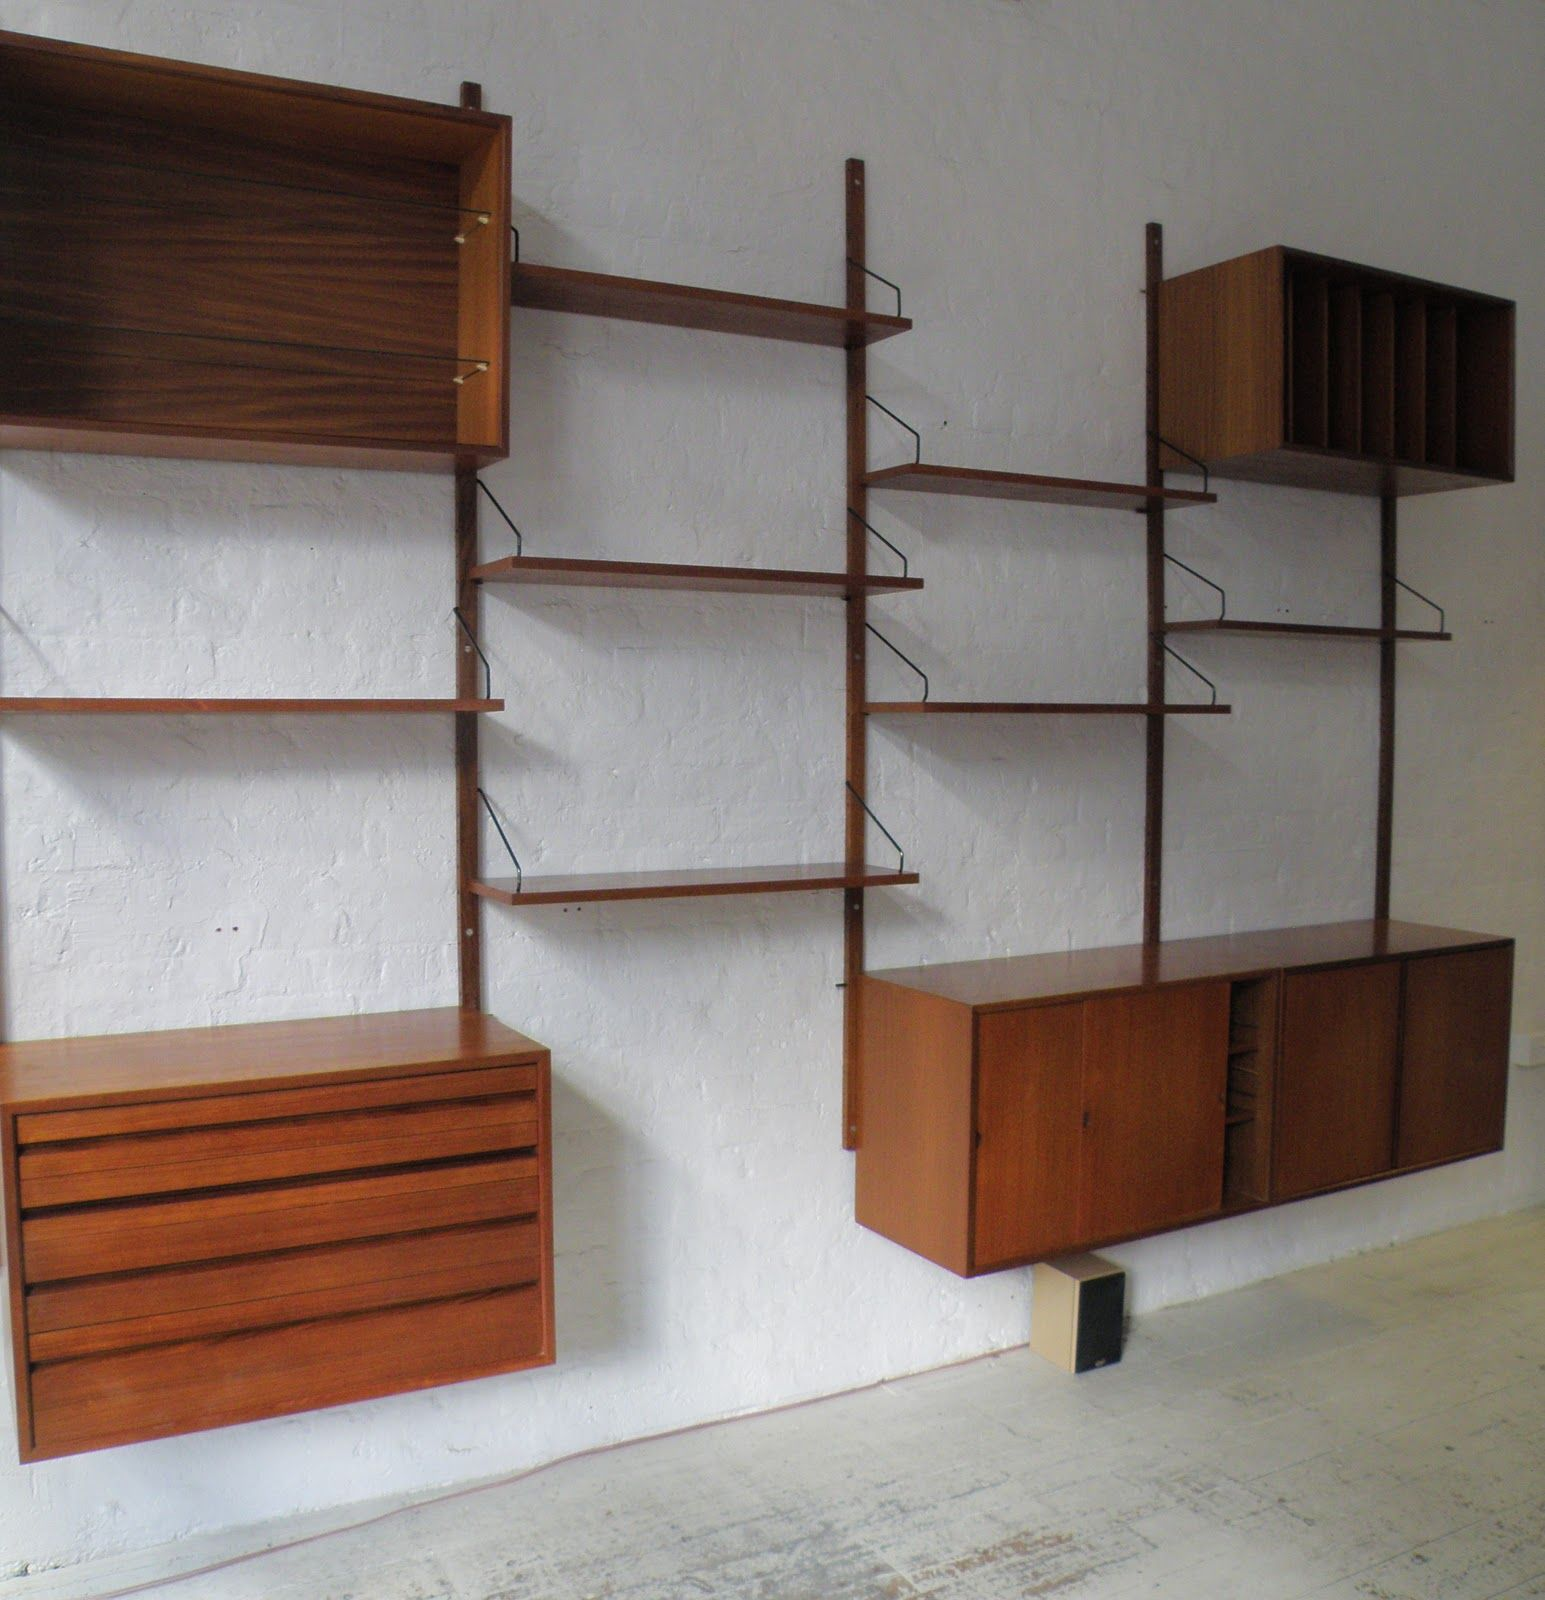 Grand Wall Mount Shelving Units For Your Home Decoration